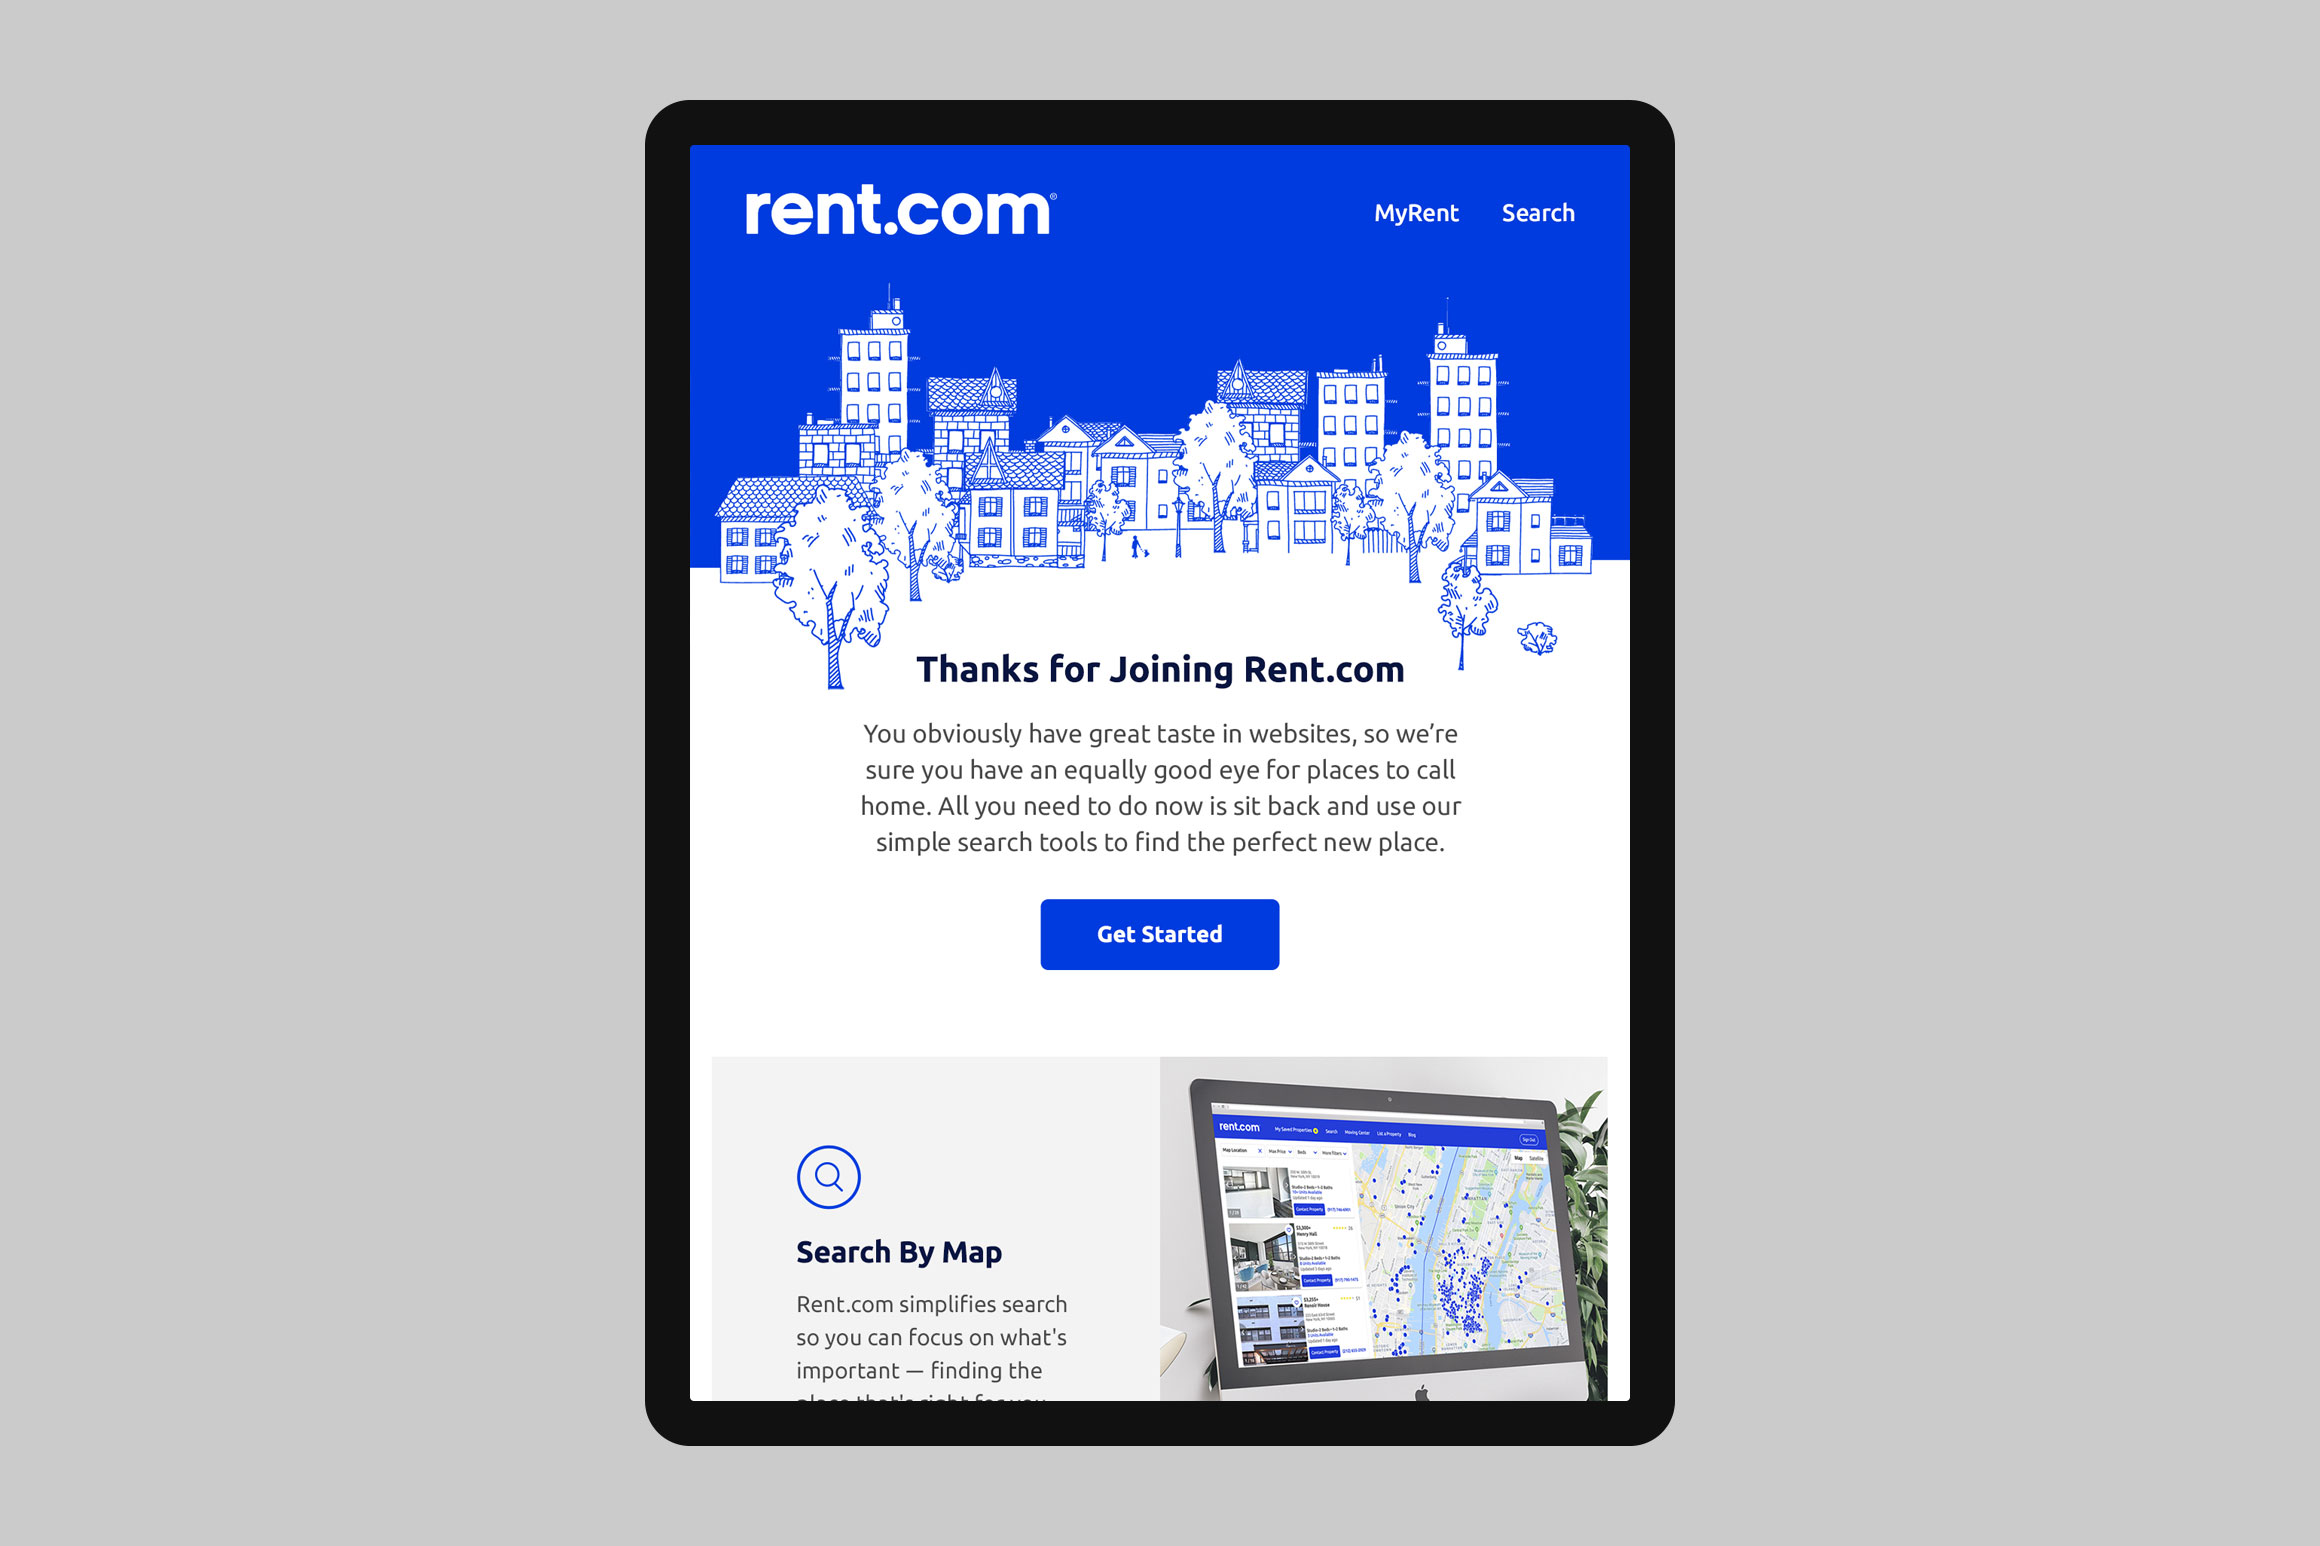 Rent.com Welcome Email